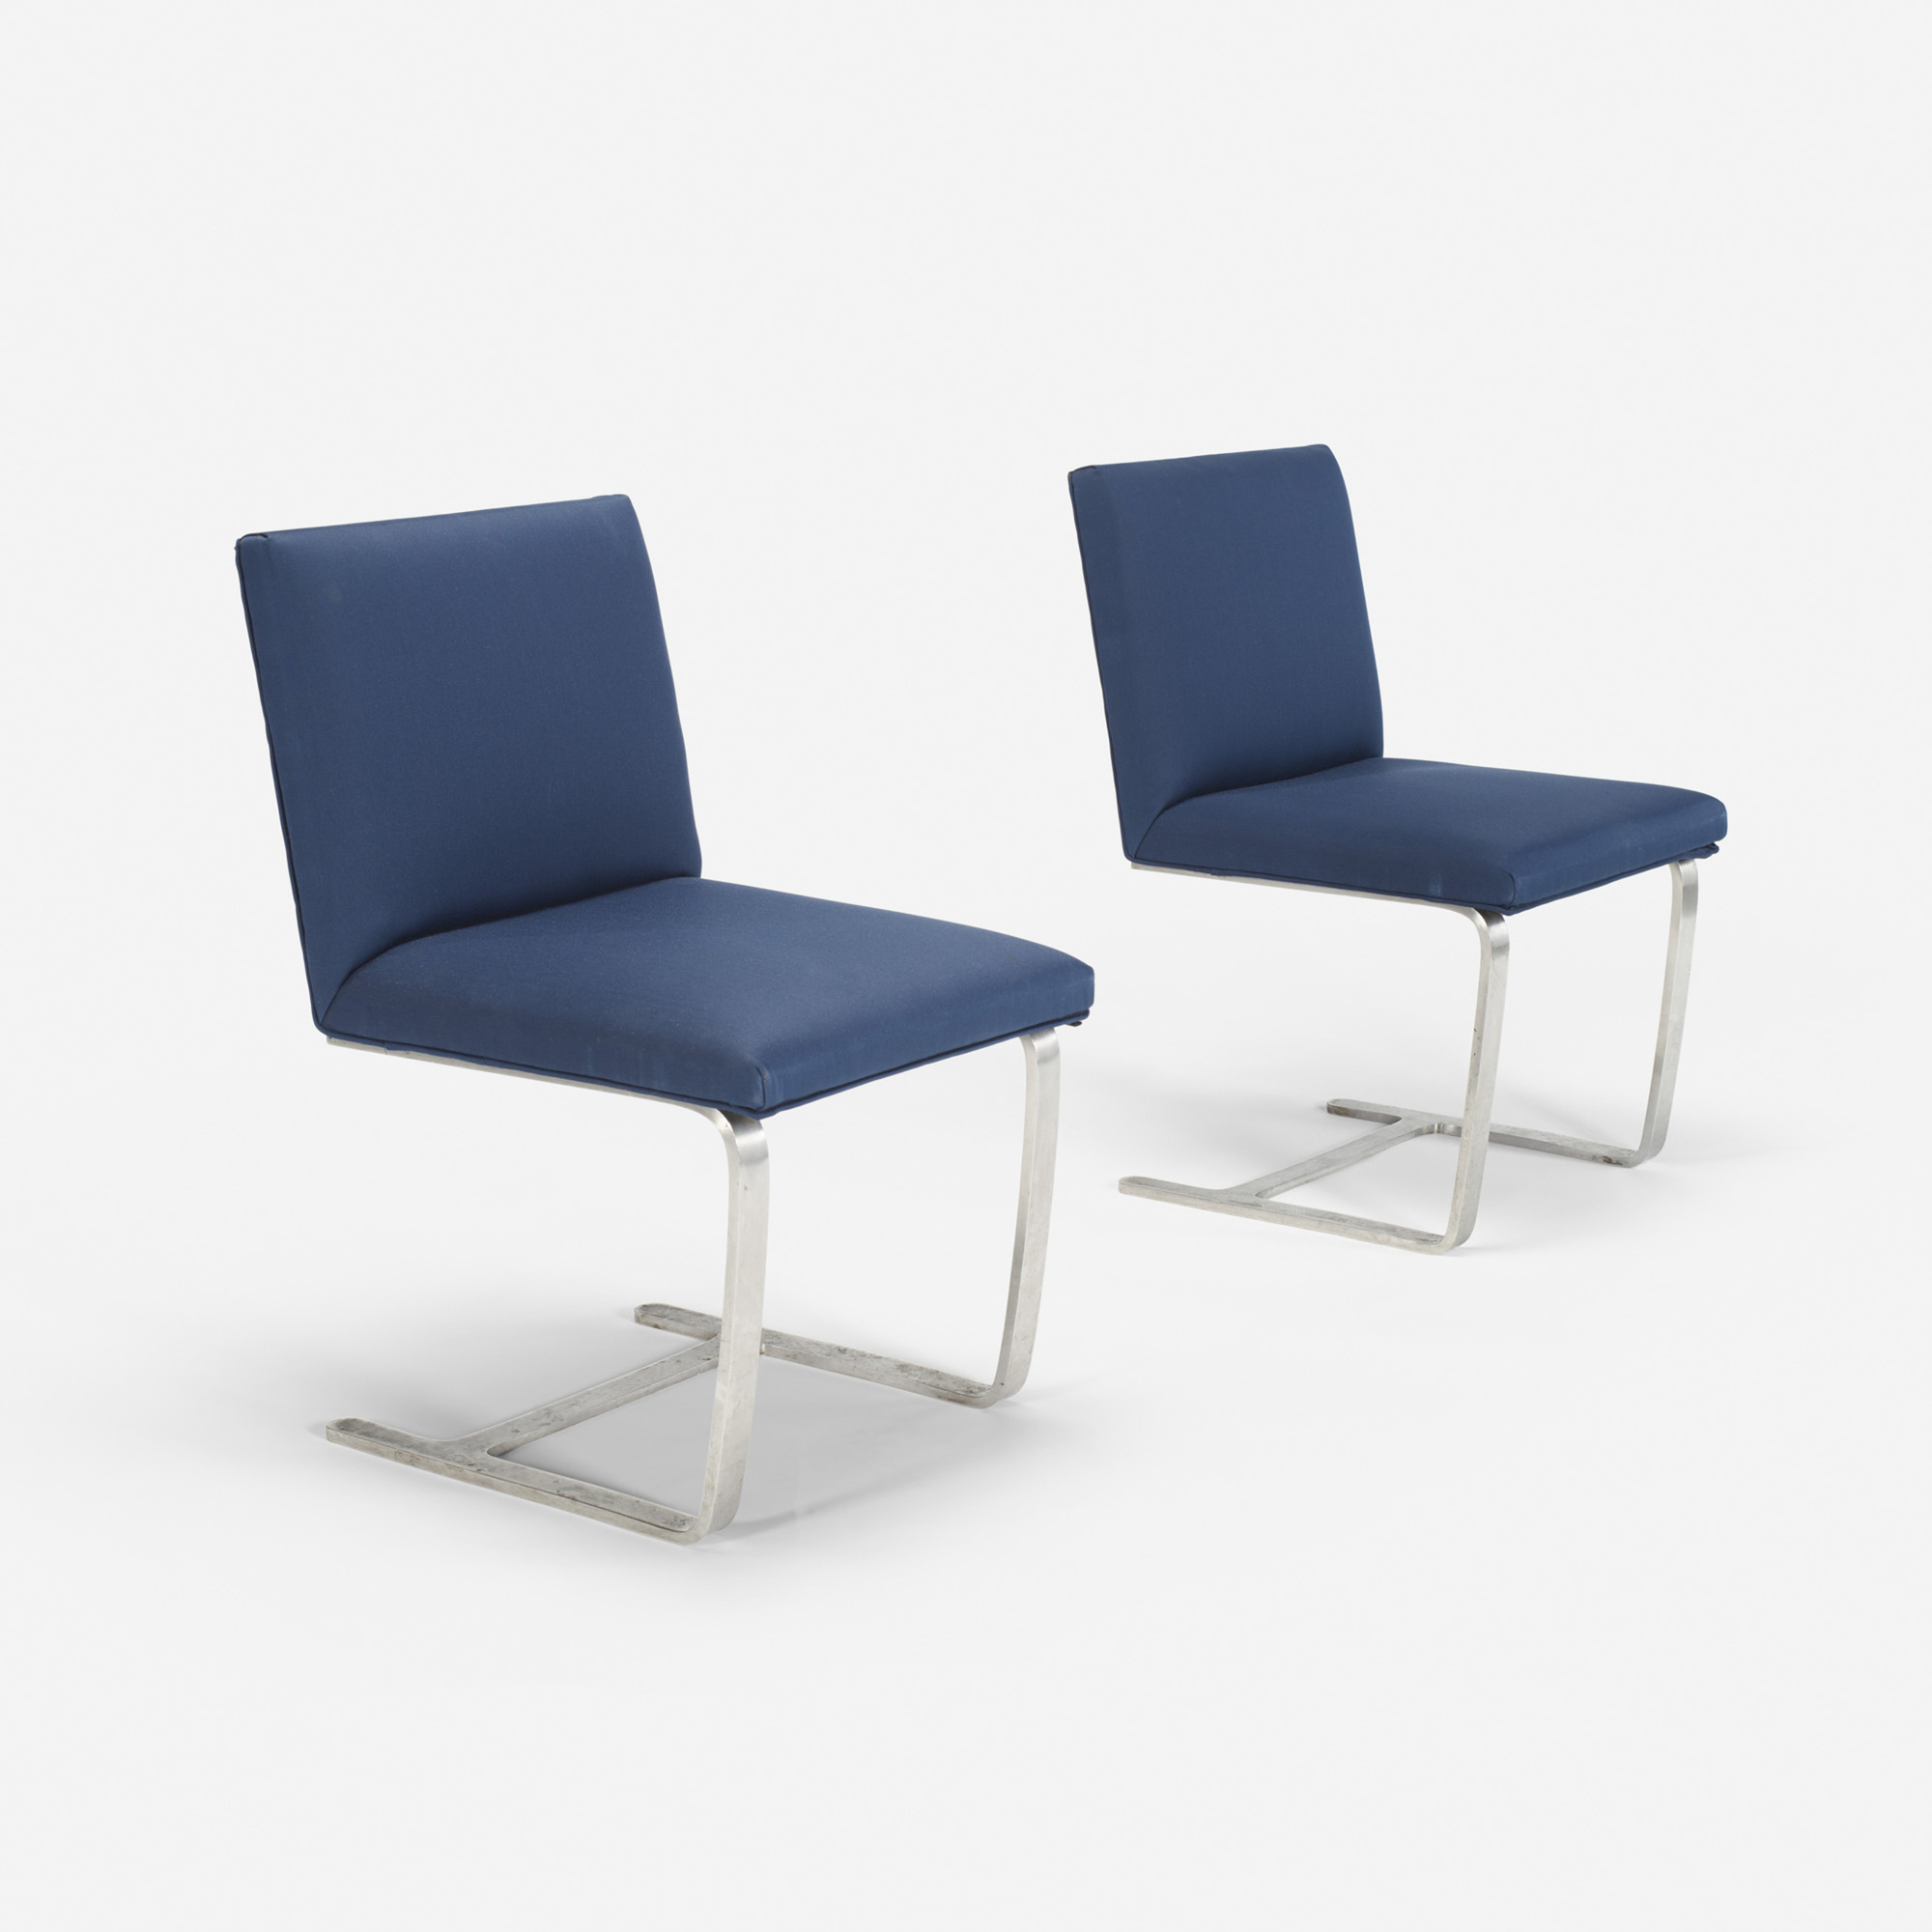 217: Ludwig Mies van der Rohe / Custom Brno side chairs from The Four Seasons, pair (1 of 1)